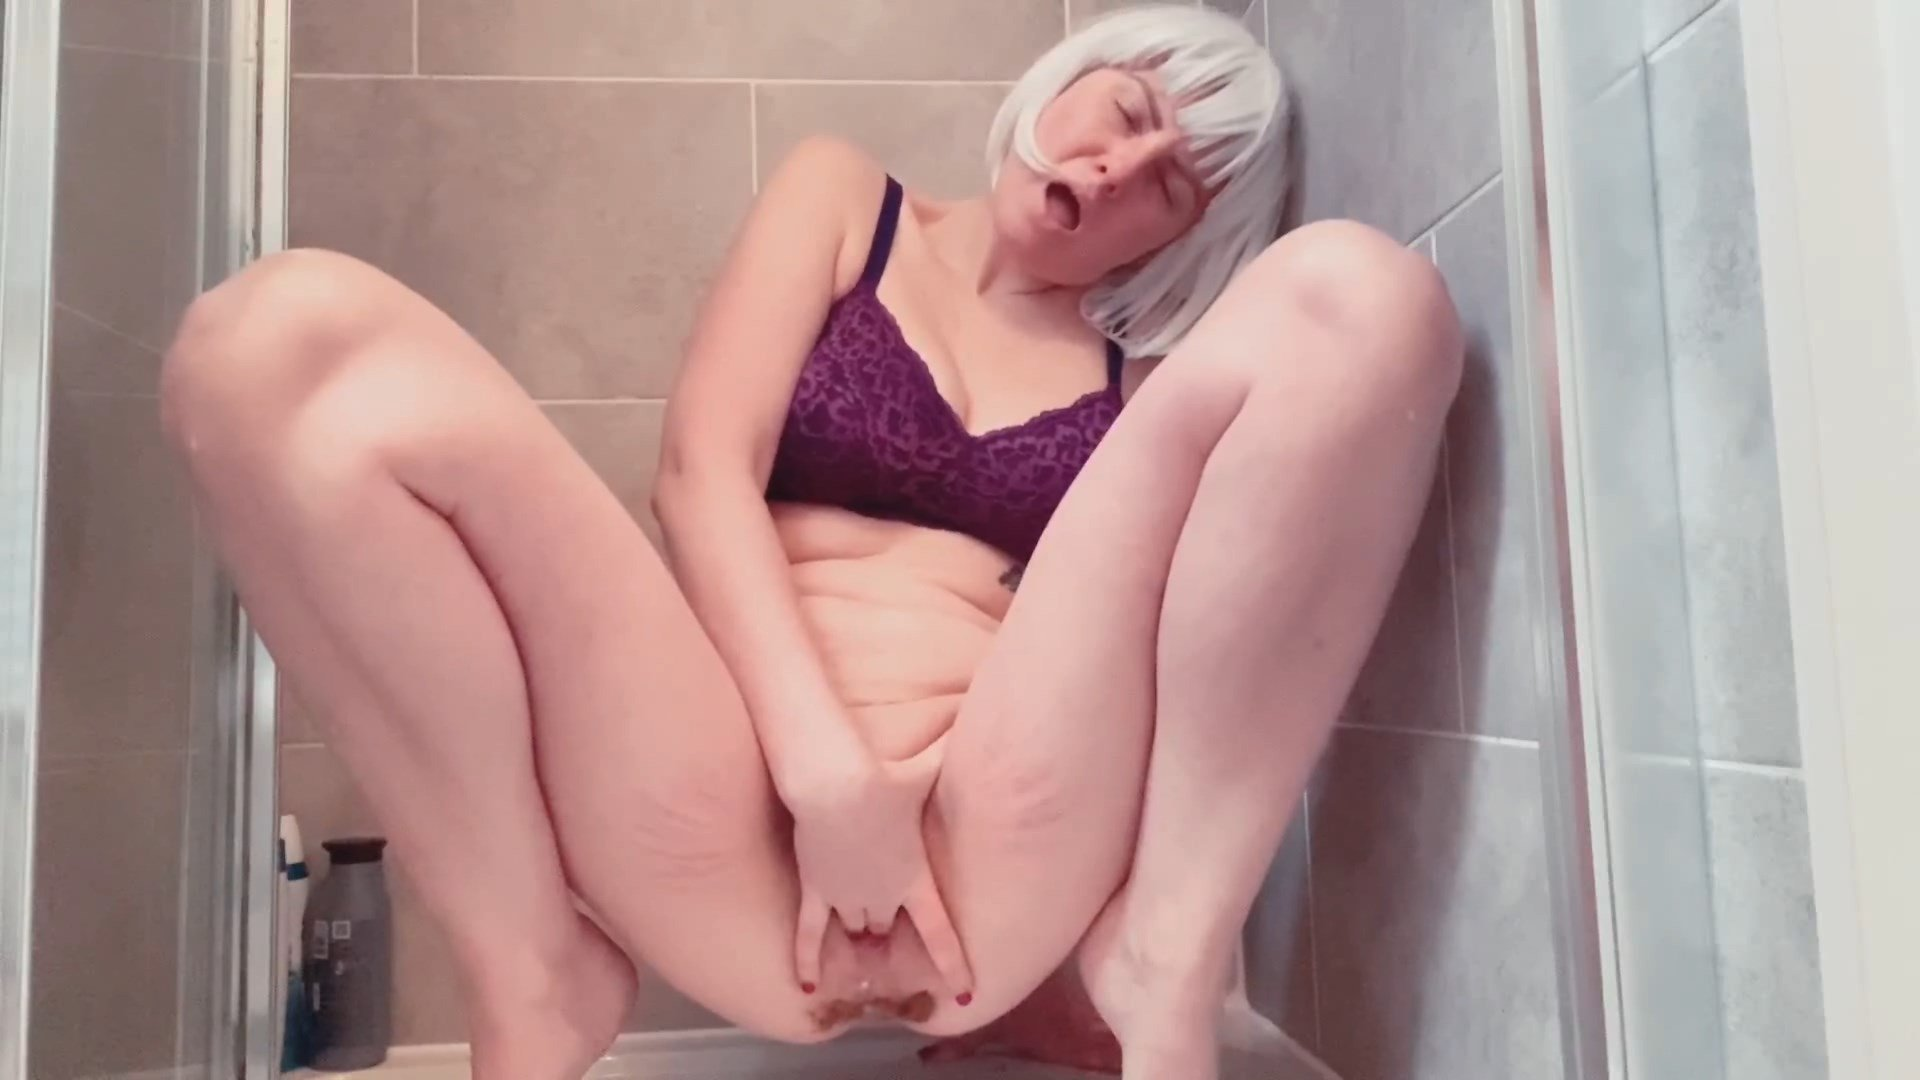 Laceyloumartin1 – Long drop poop, pee and pussy play